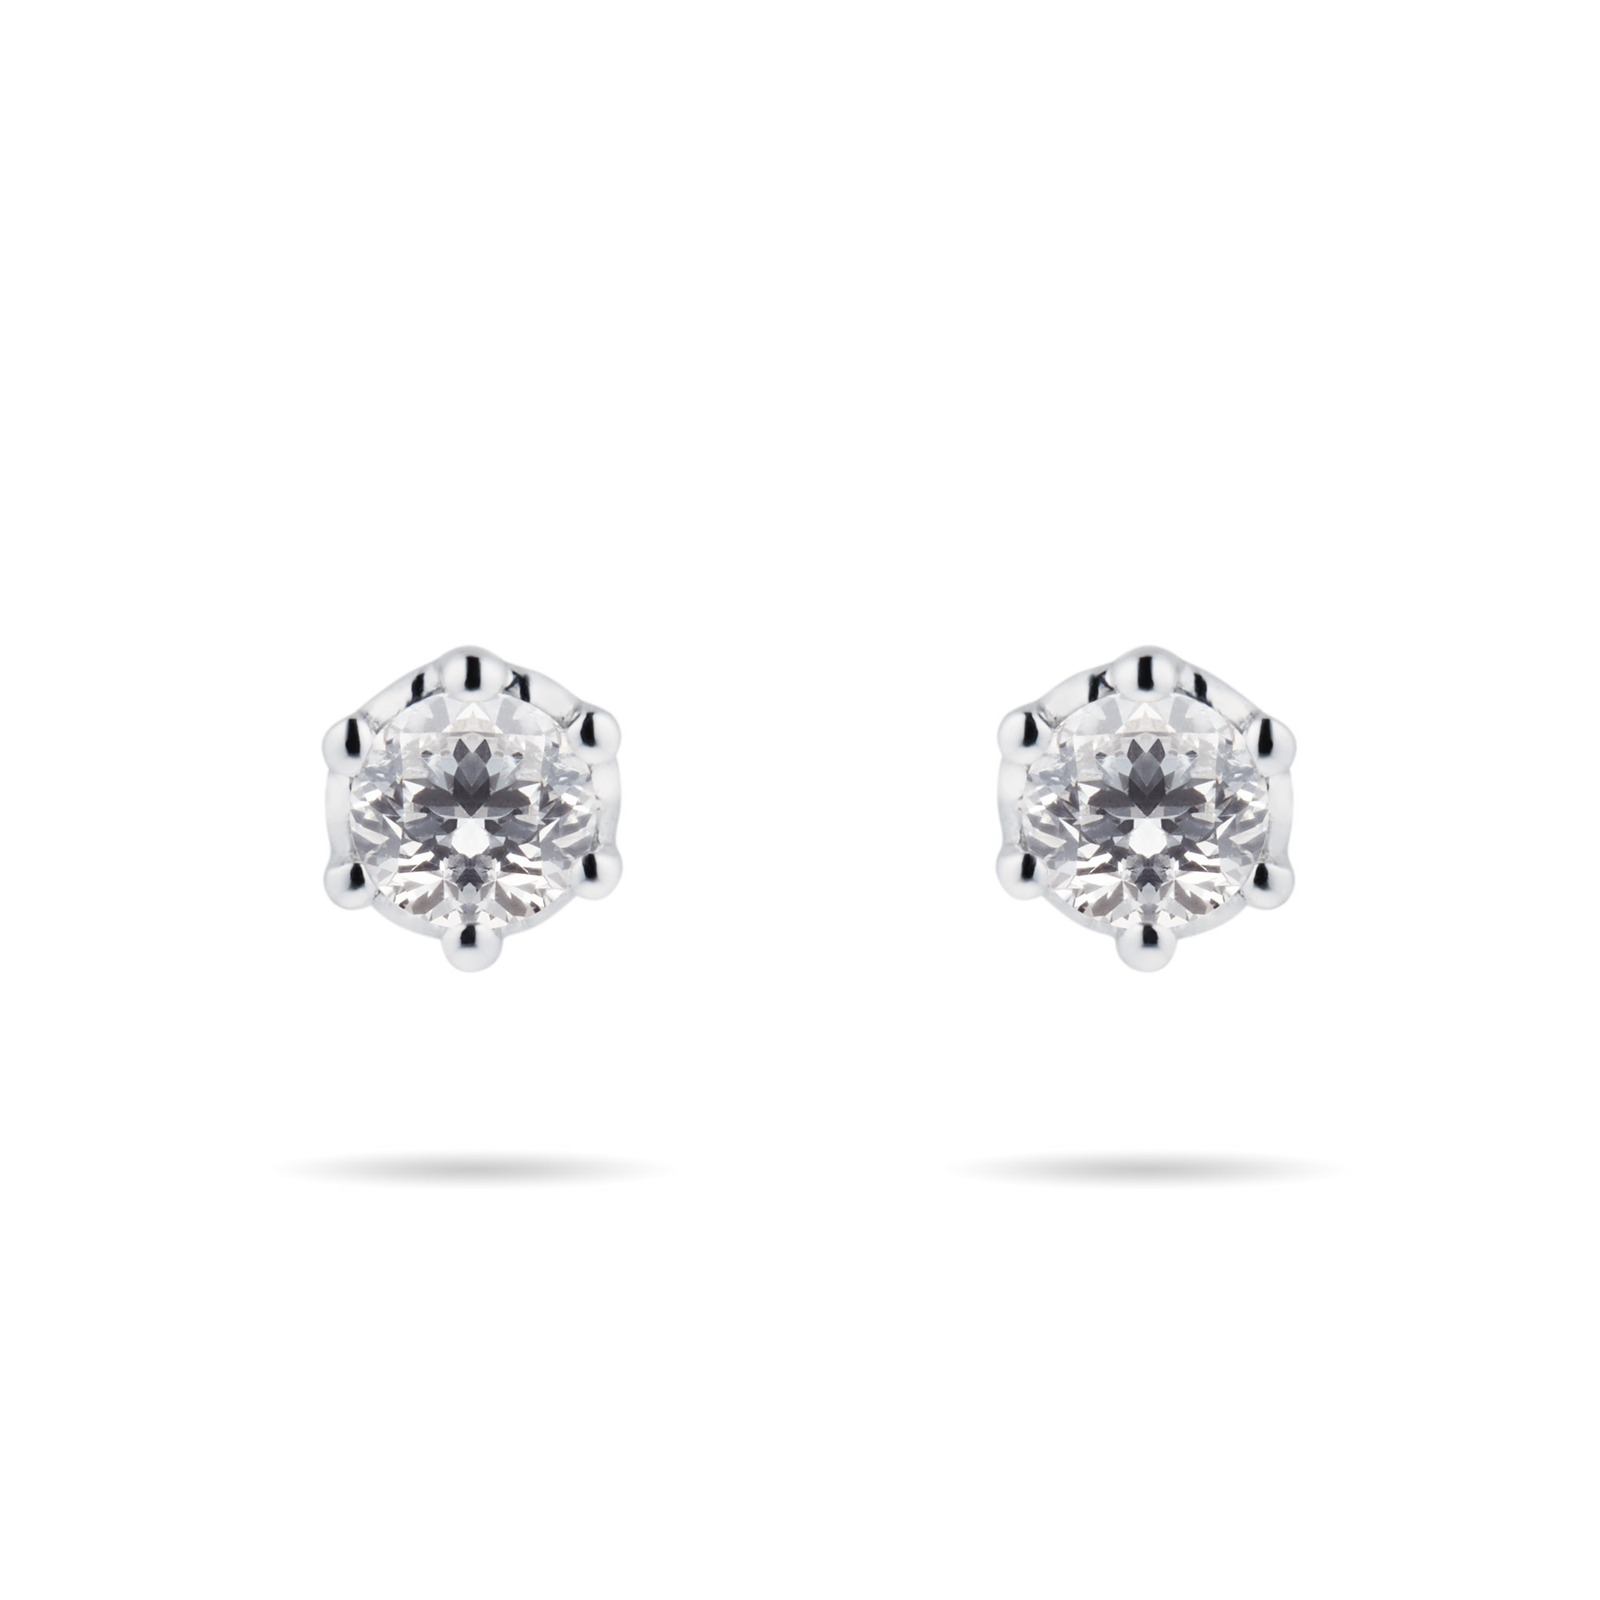 9ct White Gold 0.10cttw Bezel Set Illusion Stud Earrings